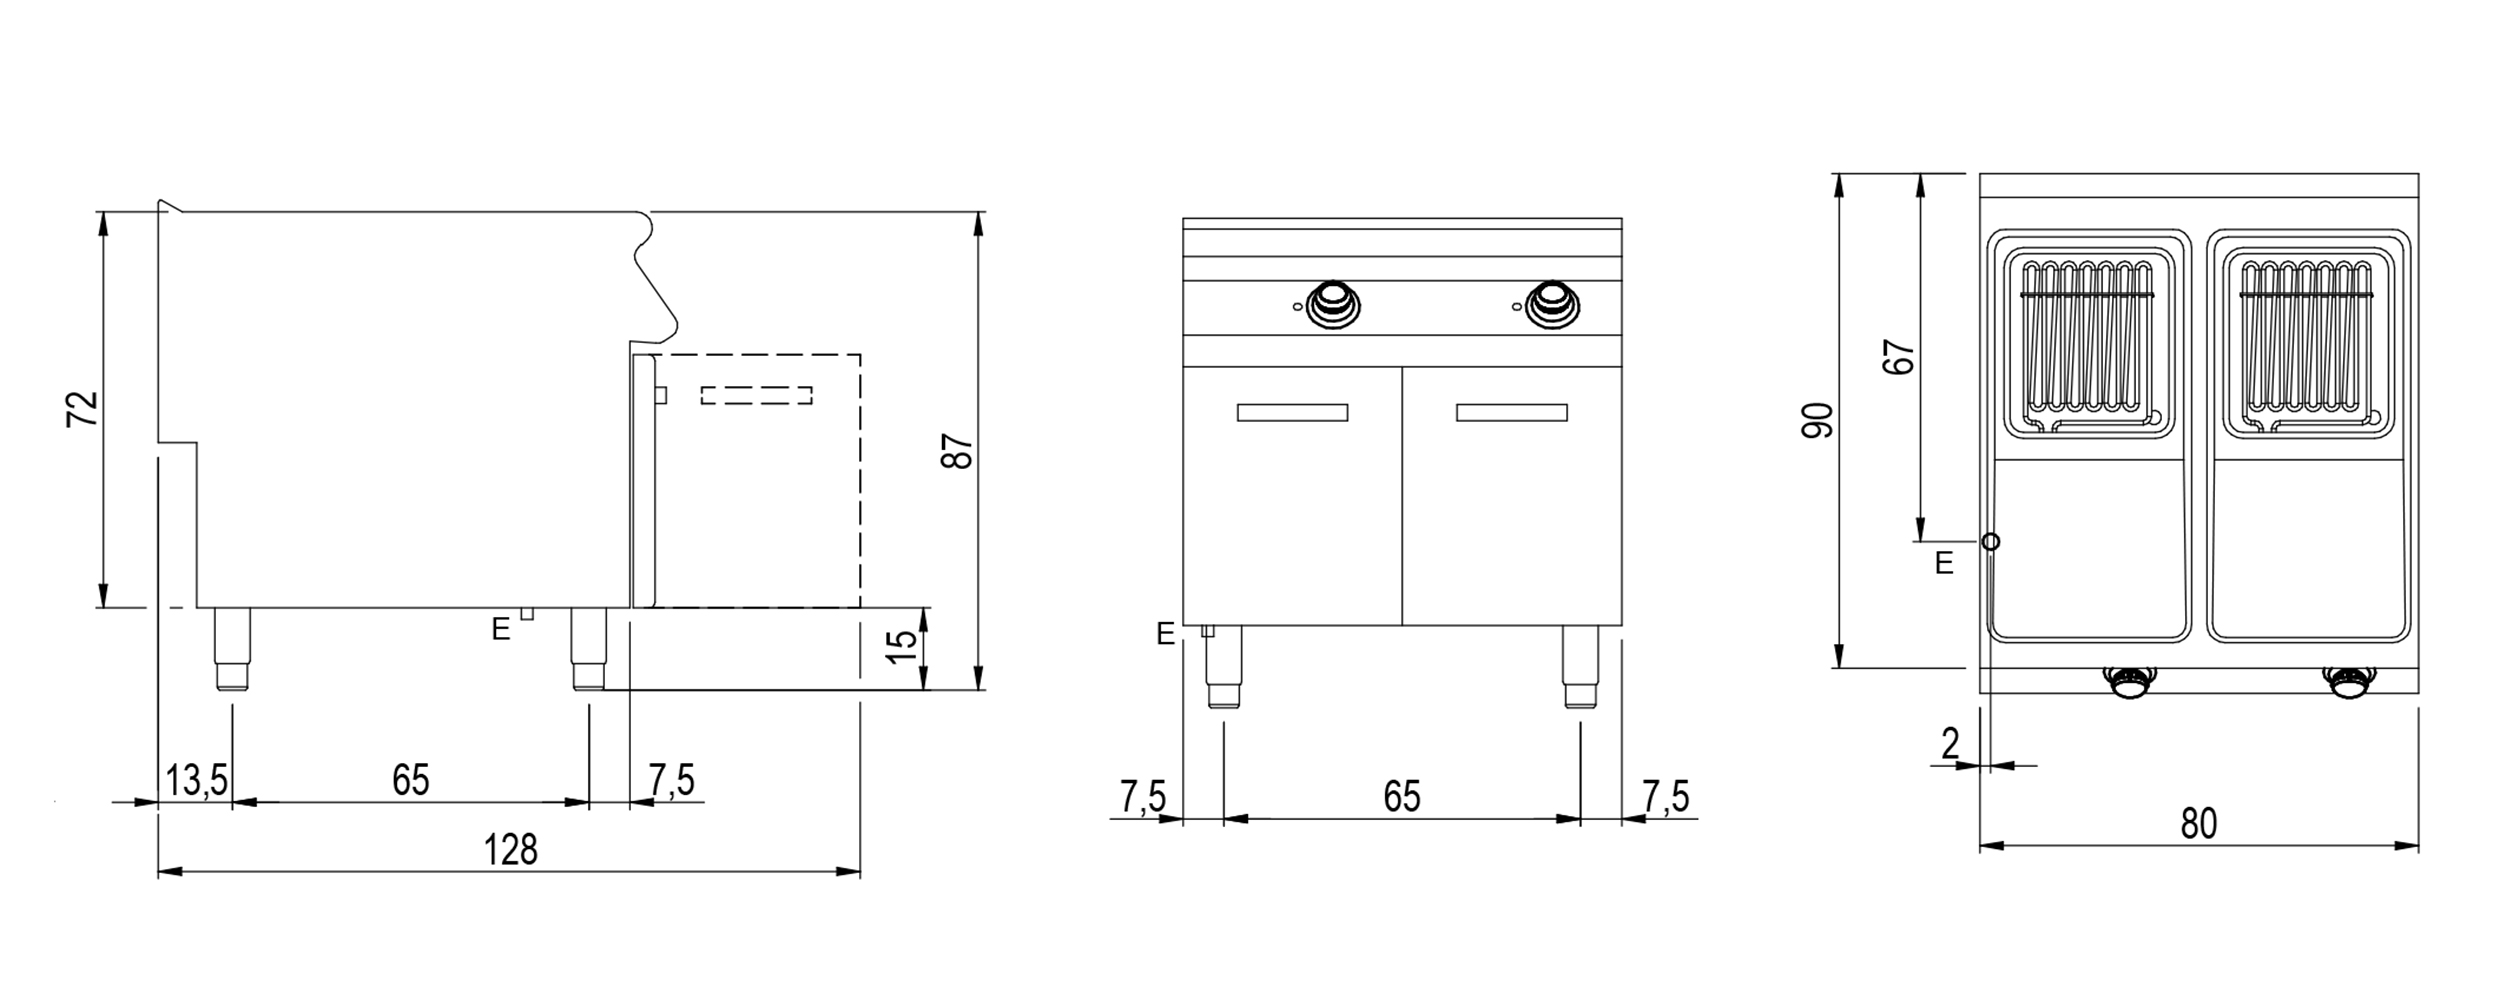 Technical datasheet drawing